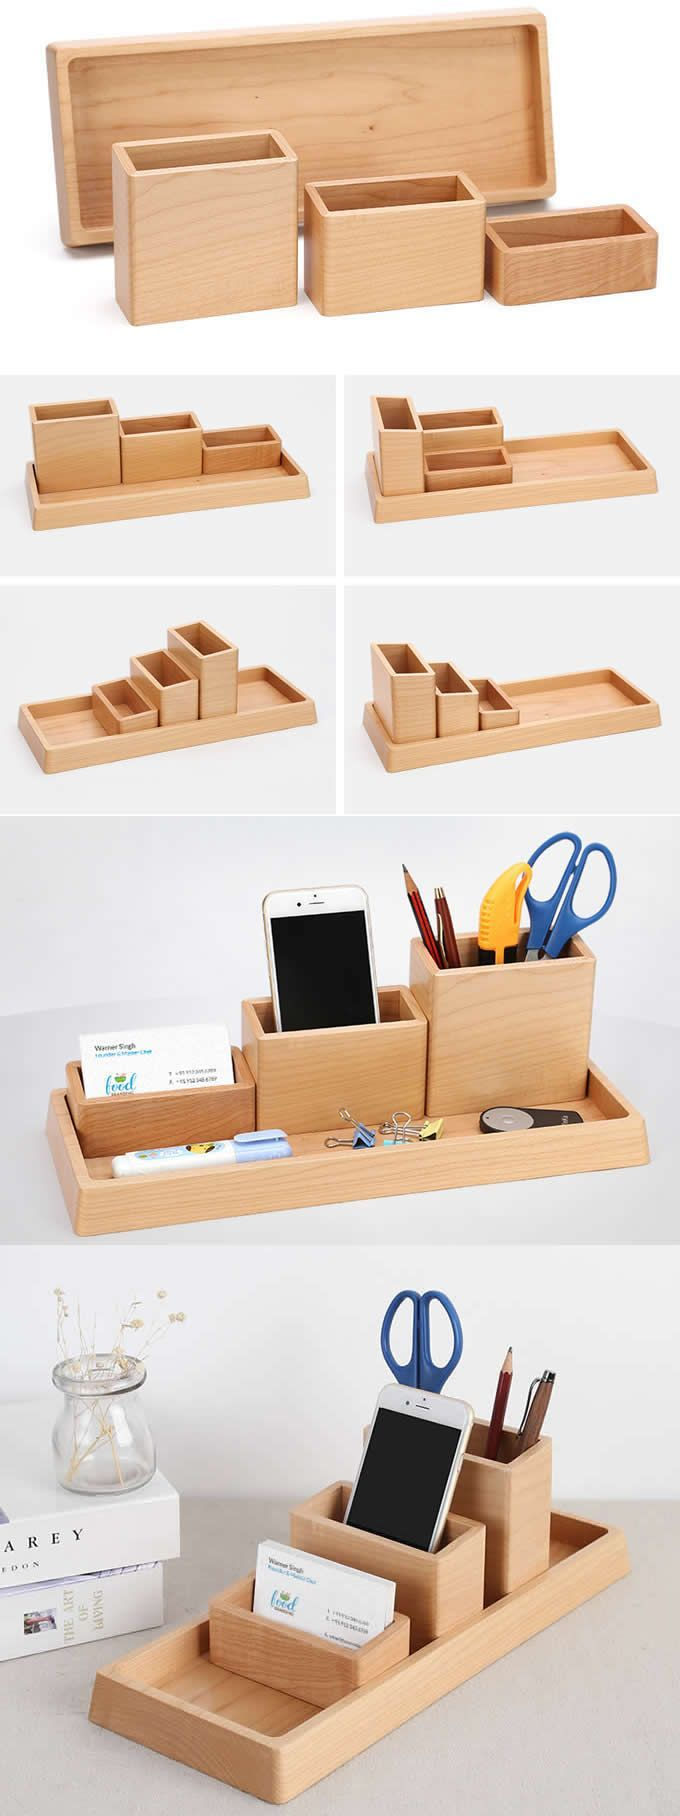 4 Compartments Wooden Office Desk Organizer Collection Smart Phone Dock Holder Pen Pencils Holde Wooden Desk Organizer Desk Organization Diy Wooden Office Desk